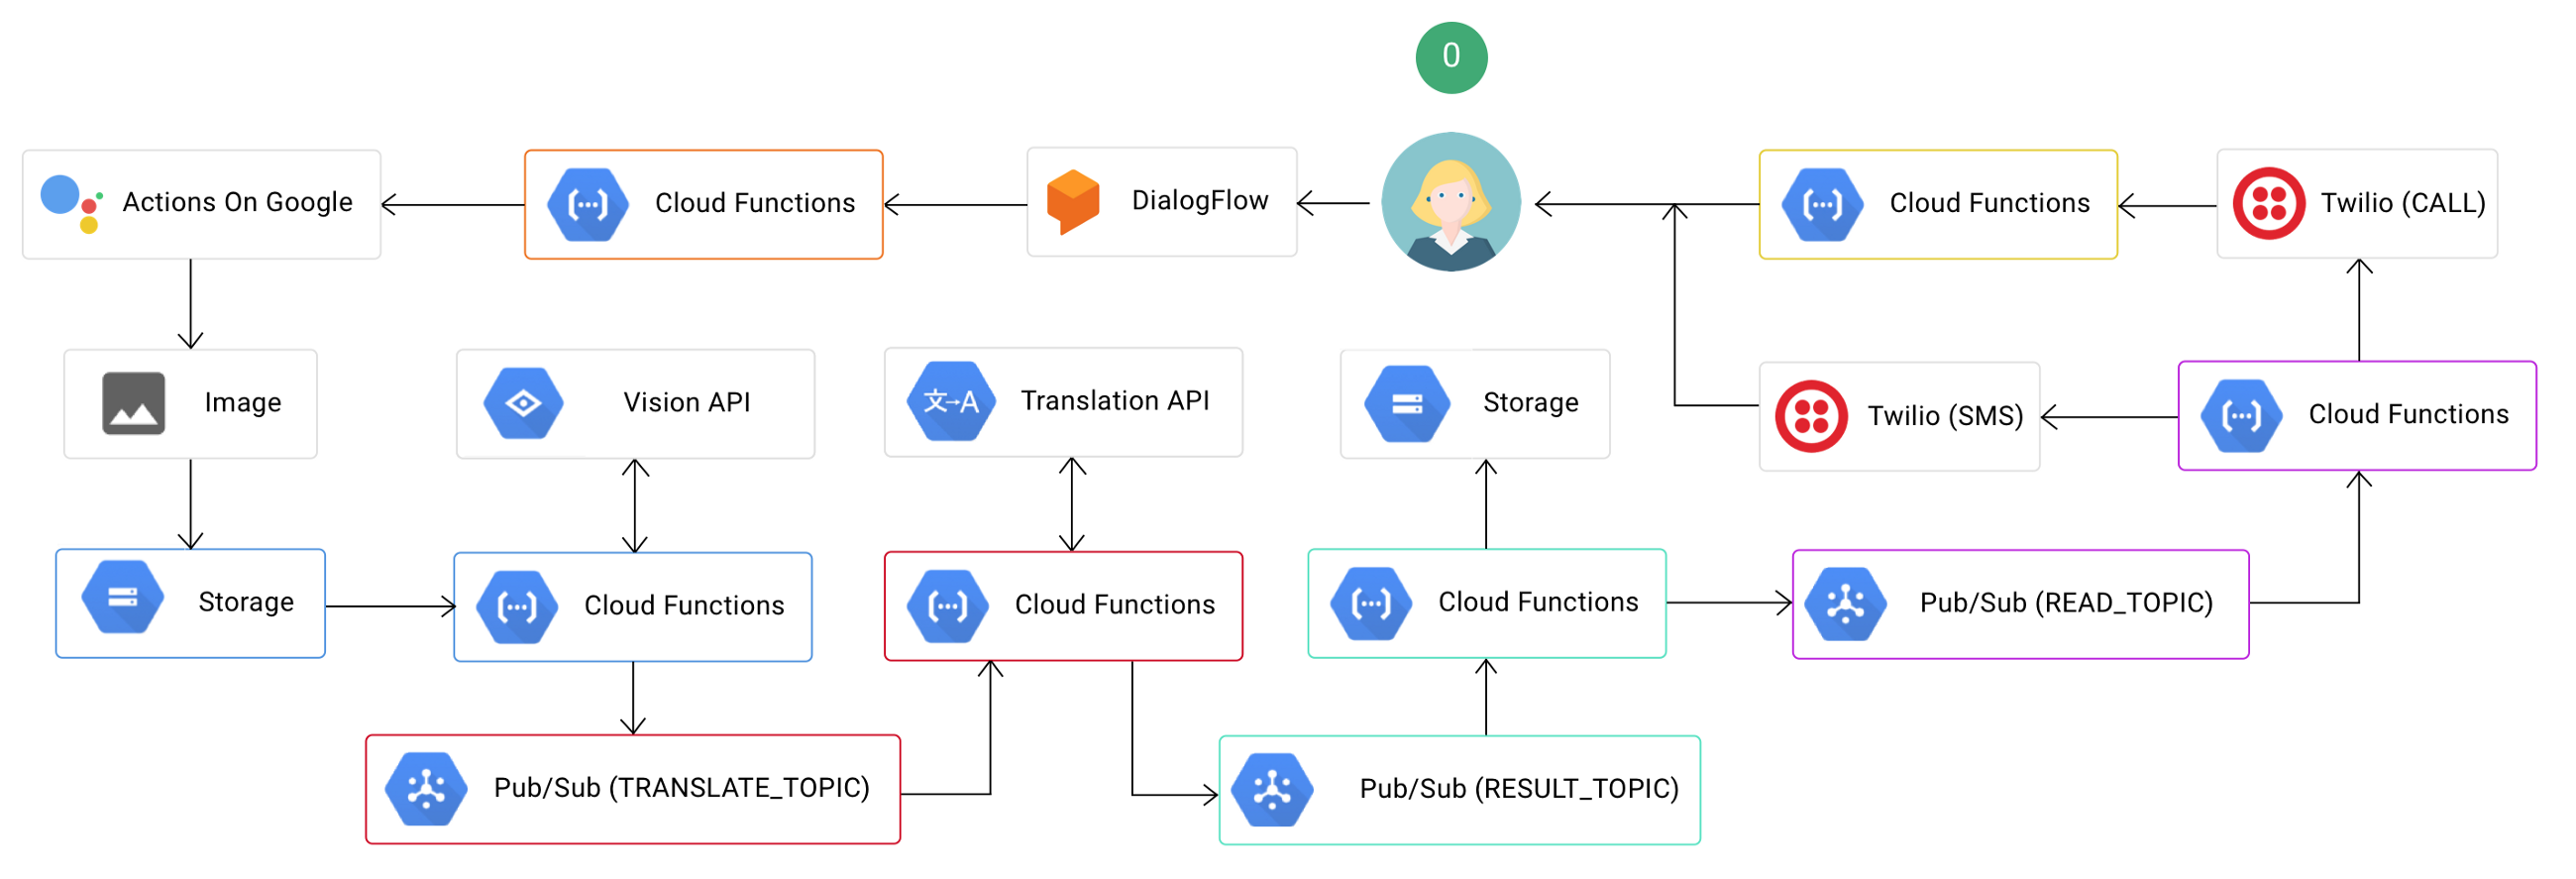 How To Get Started With Google Cloud Infrastructure U2013 Web Manual Guide